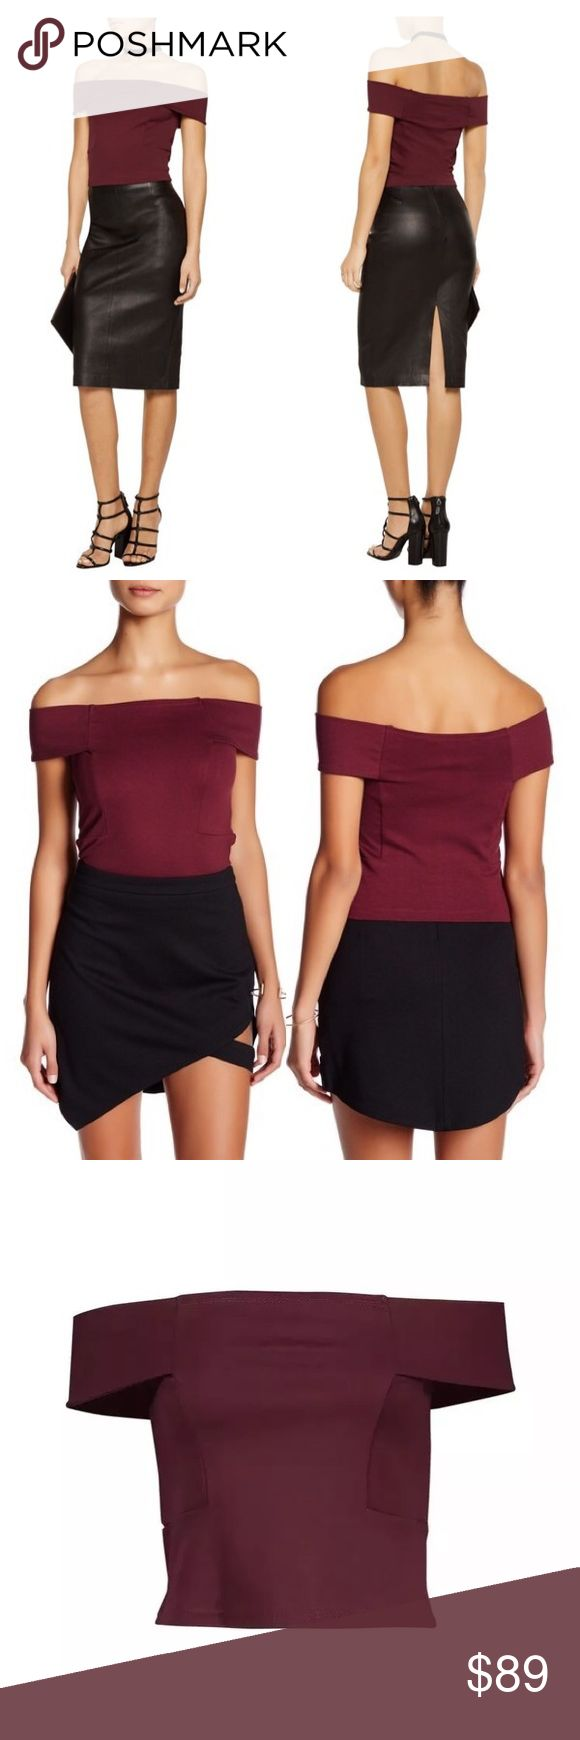 """Walter Baker Eve Off Shoulder Top Burgundy Medium Details - Off-the-shoulder - Sleeveless - Partial cutout - Cropped Armpit to armpit:16"""" Length:16"""" Brand new with tags!! Retails for $148.00 Walter Baker Tops Blouses"""